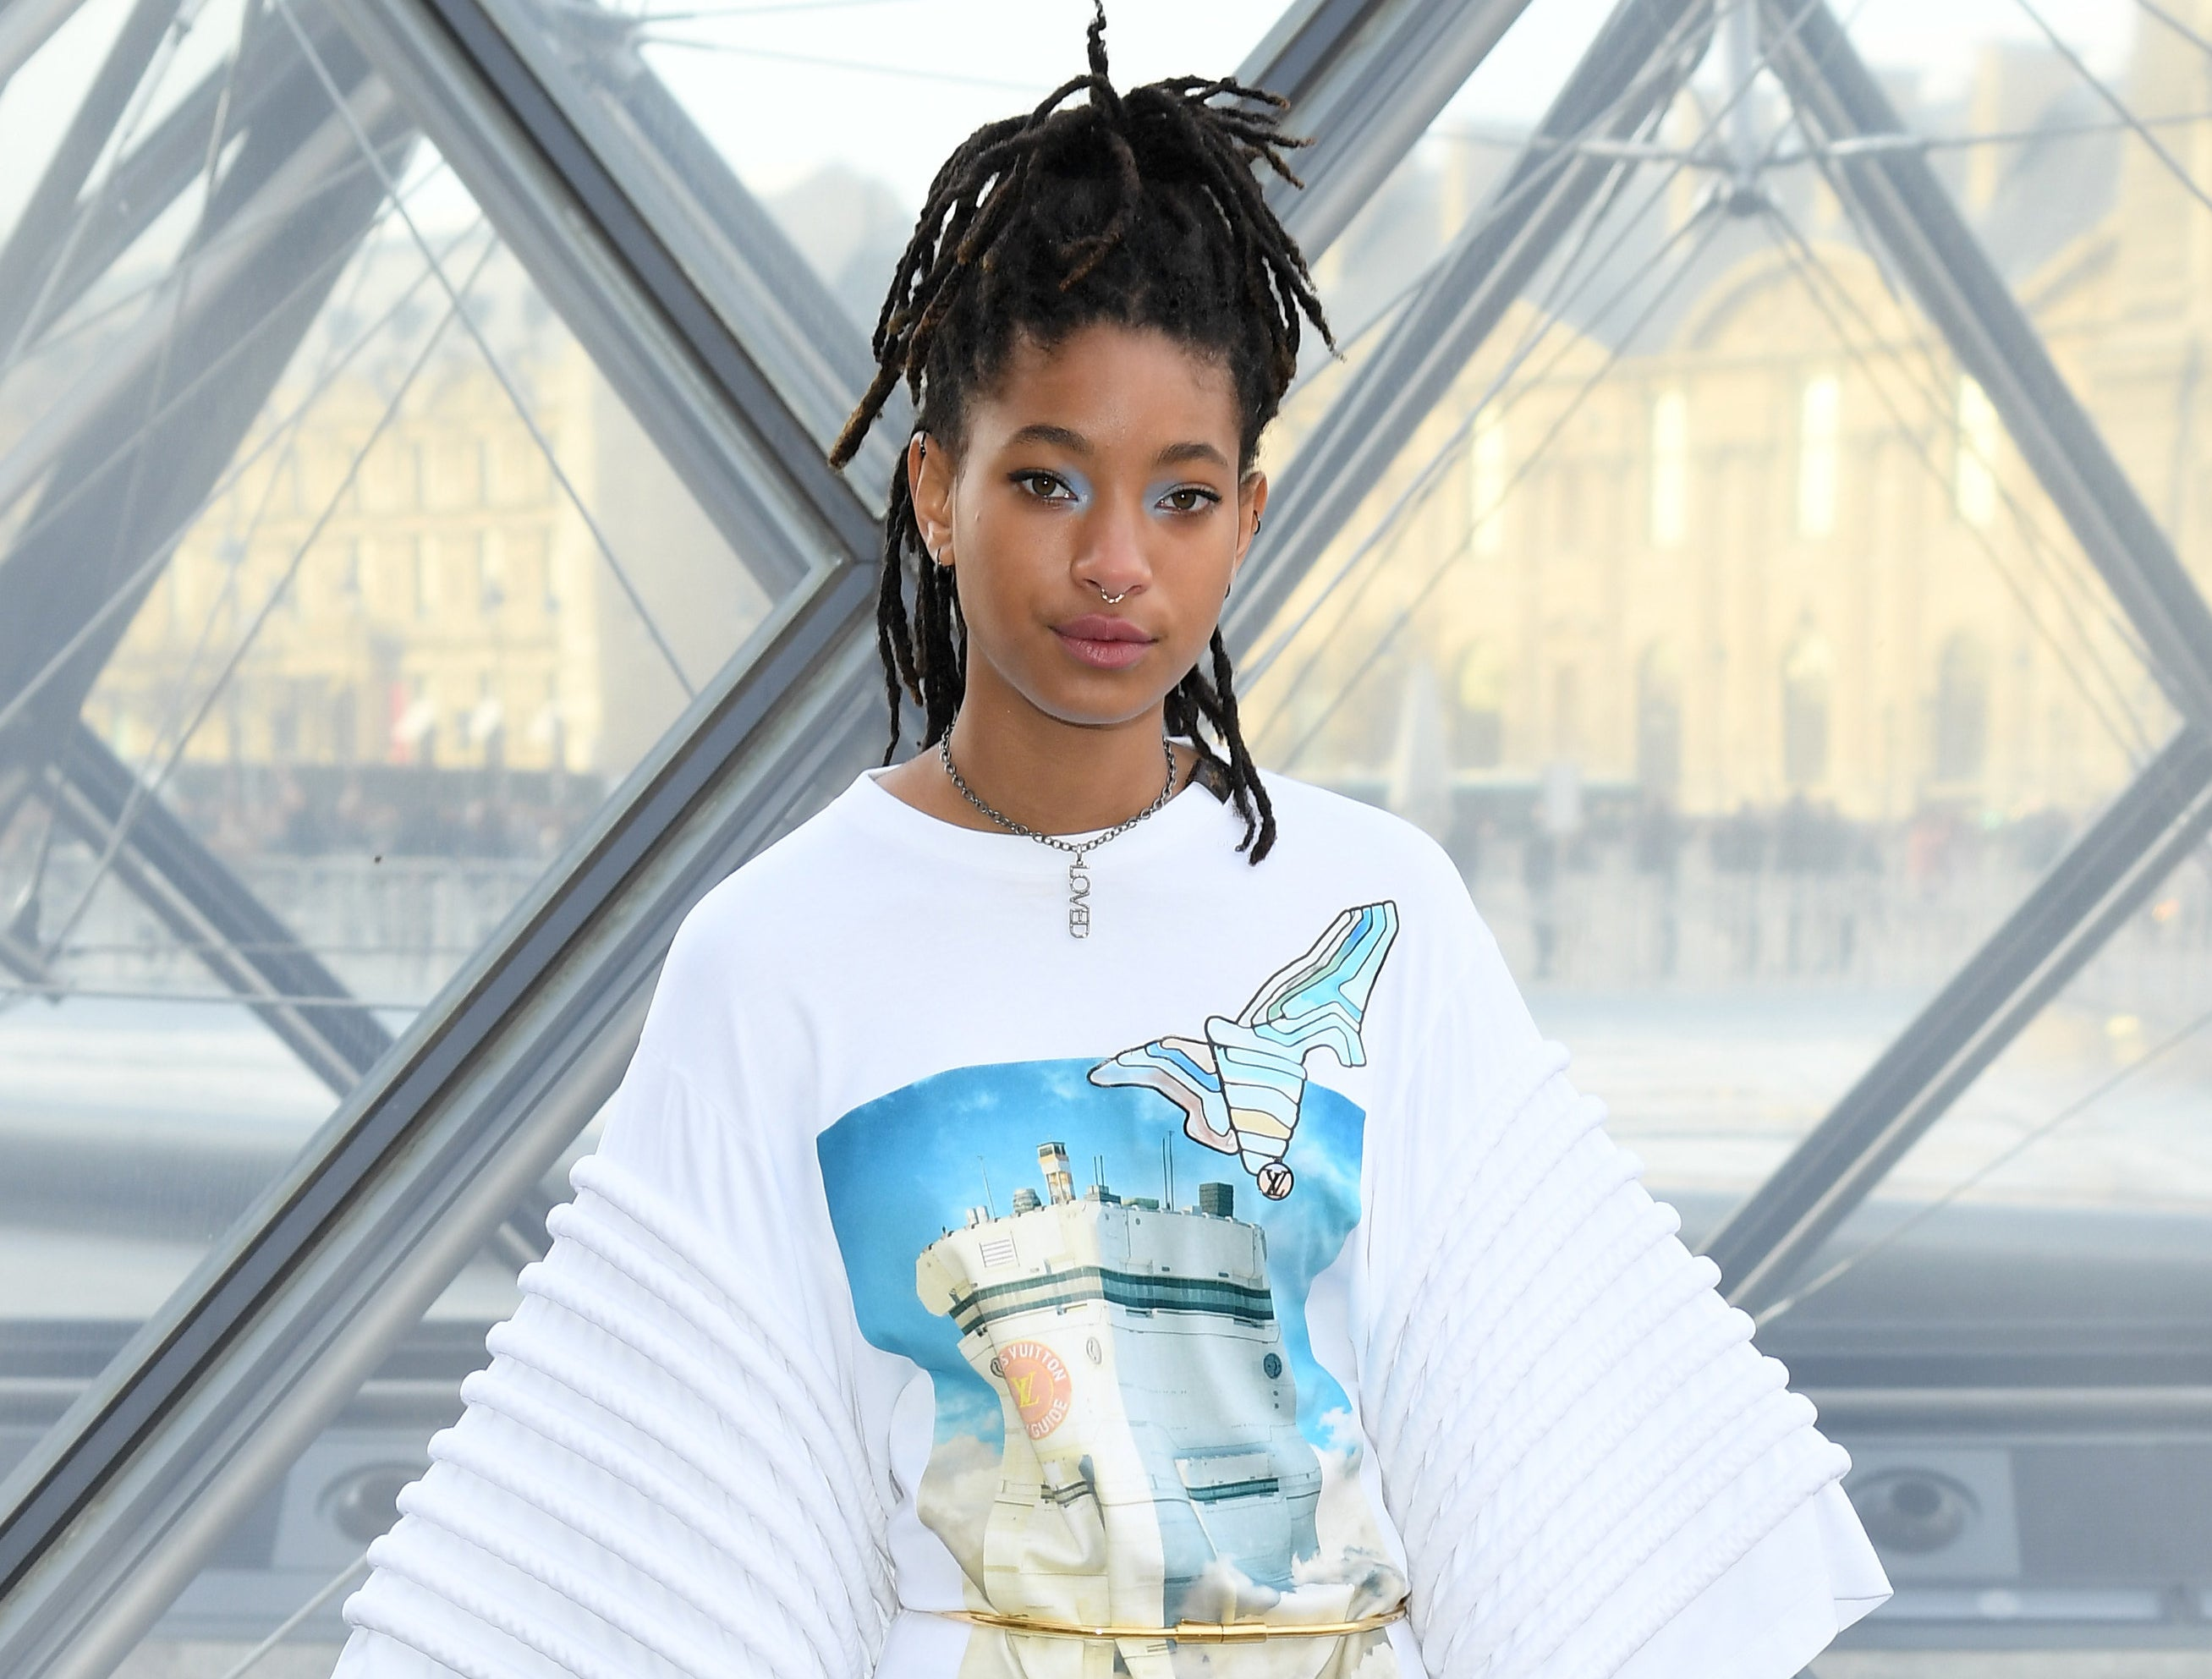 Willow smiles while attending a fashion event in Paris